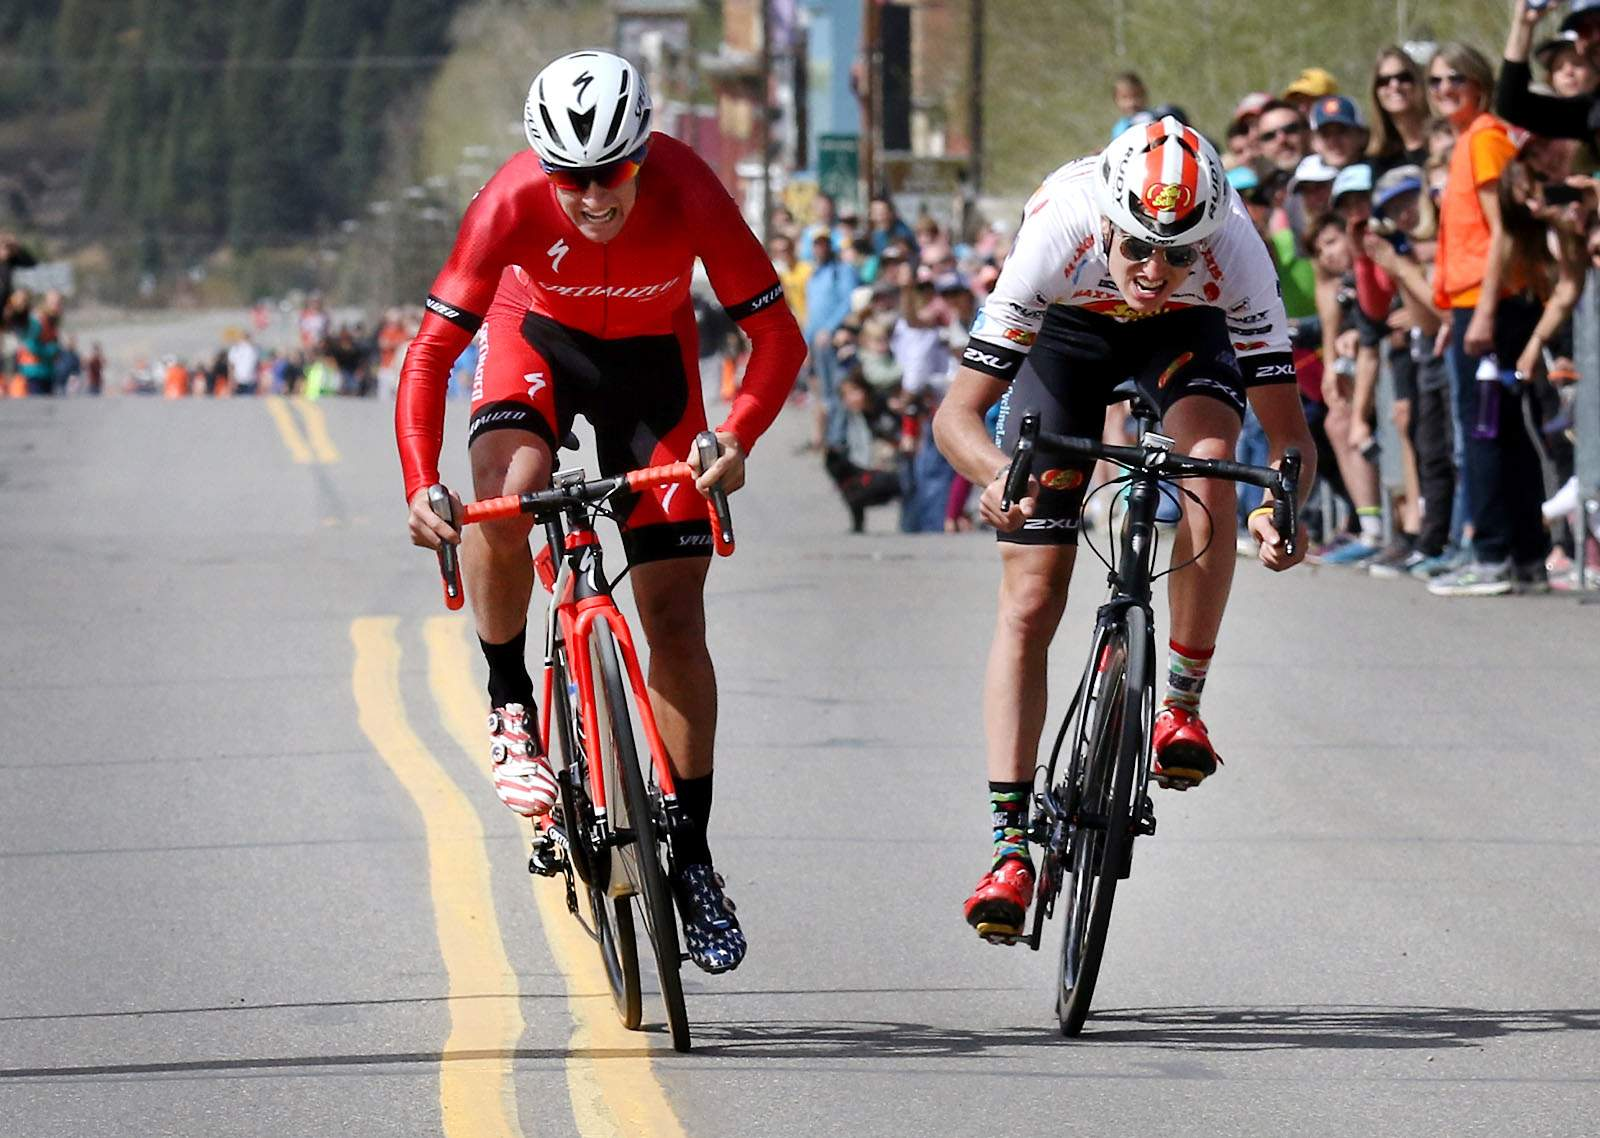 Howard Grotts wins his first Iron Horse Bicycle Classic in epic sprint finish